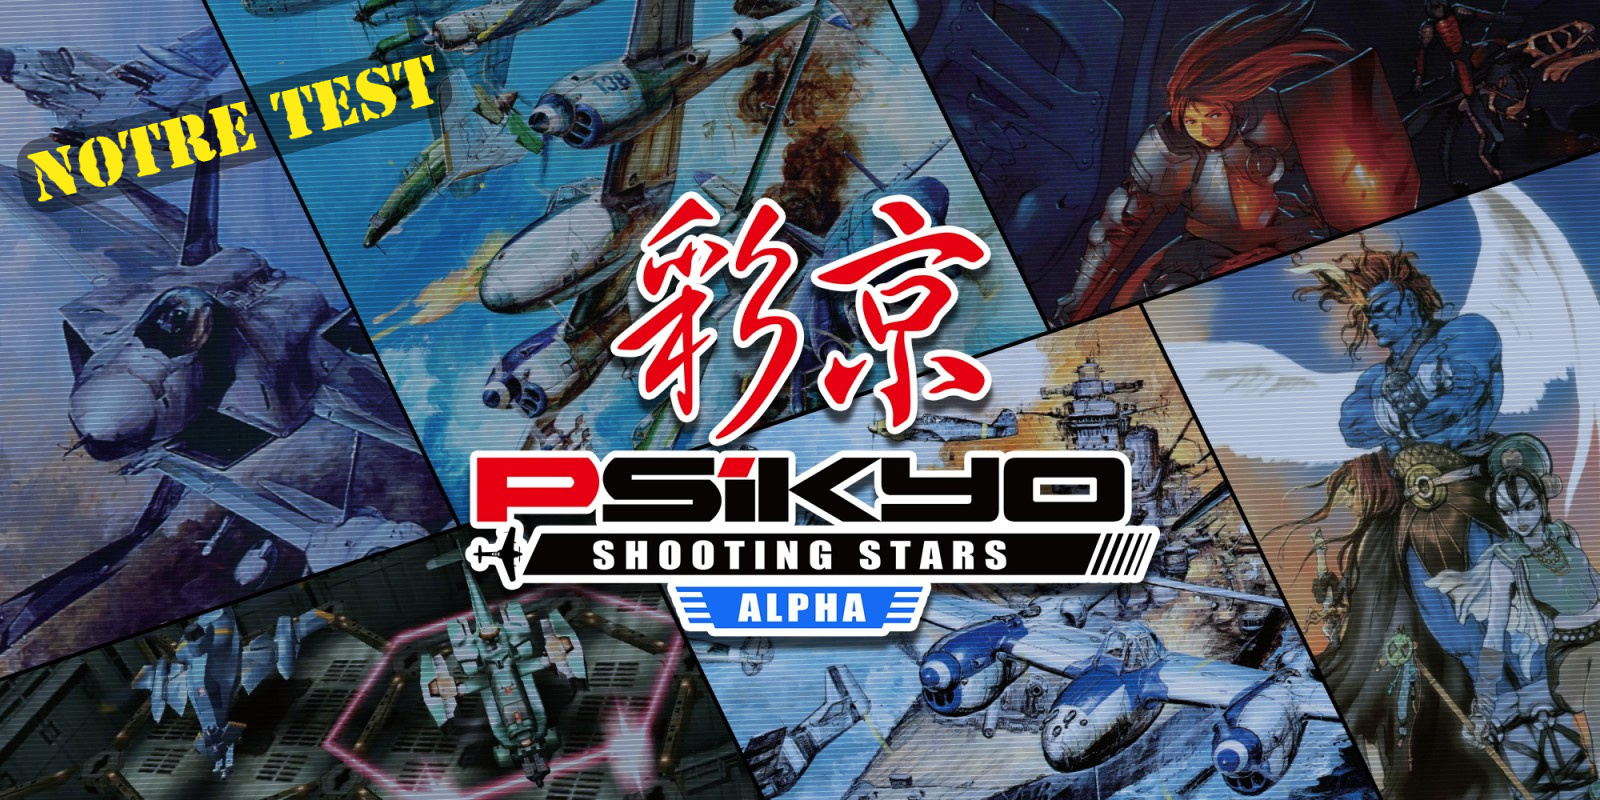 Psikyo Shooting Stars ALPHA Limited Edition (1)